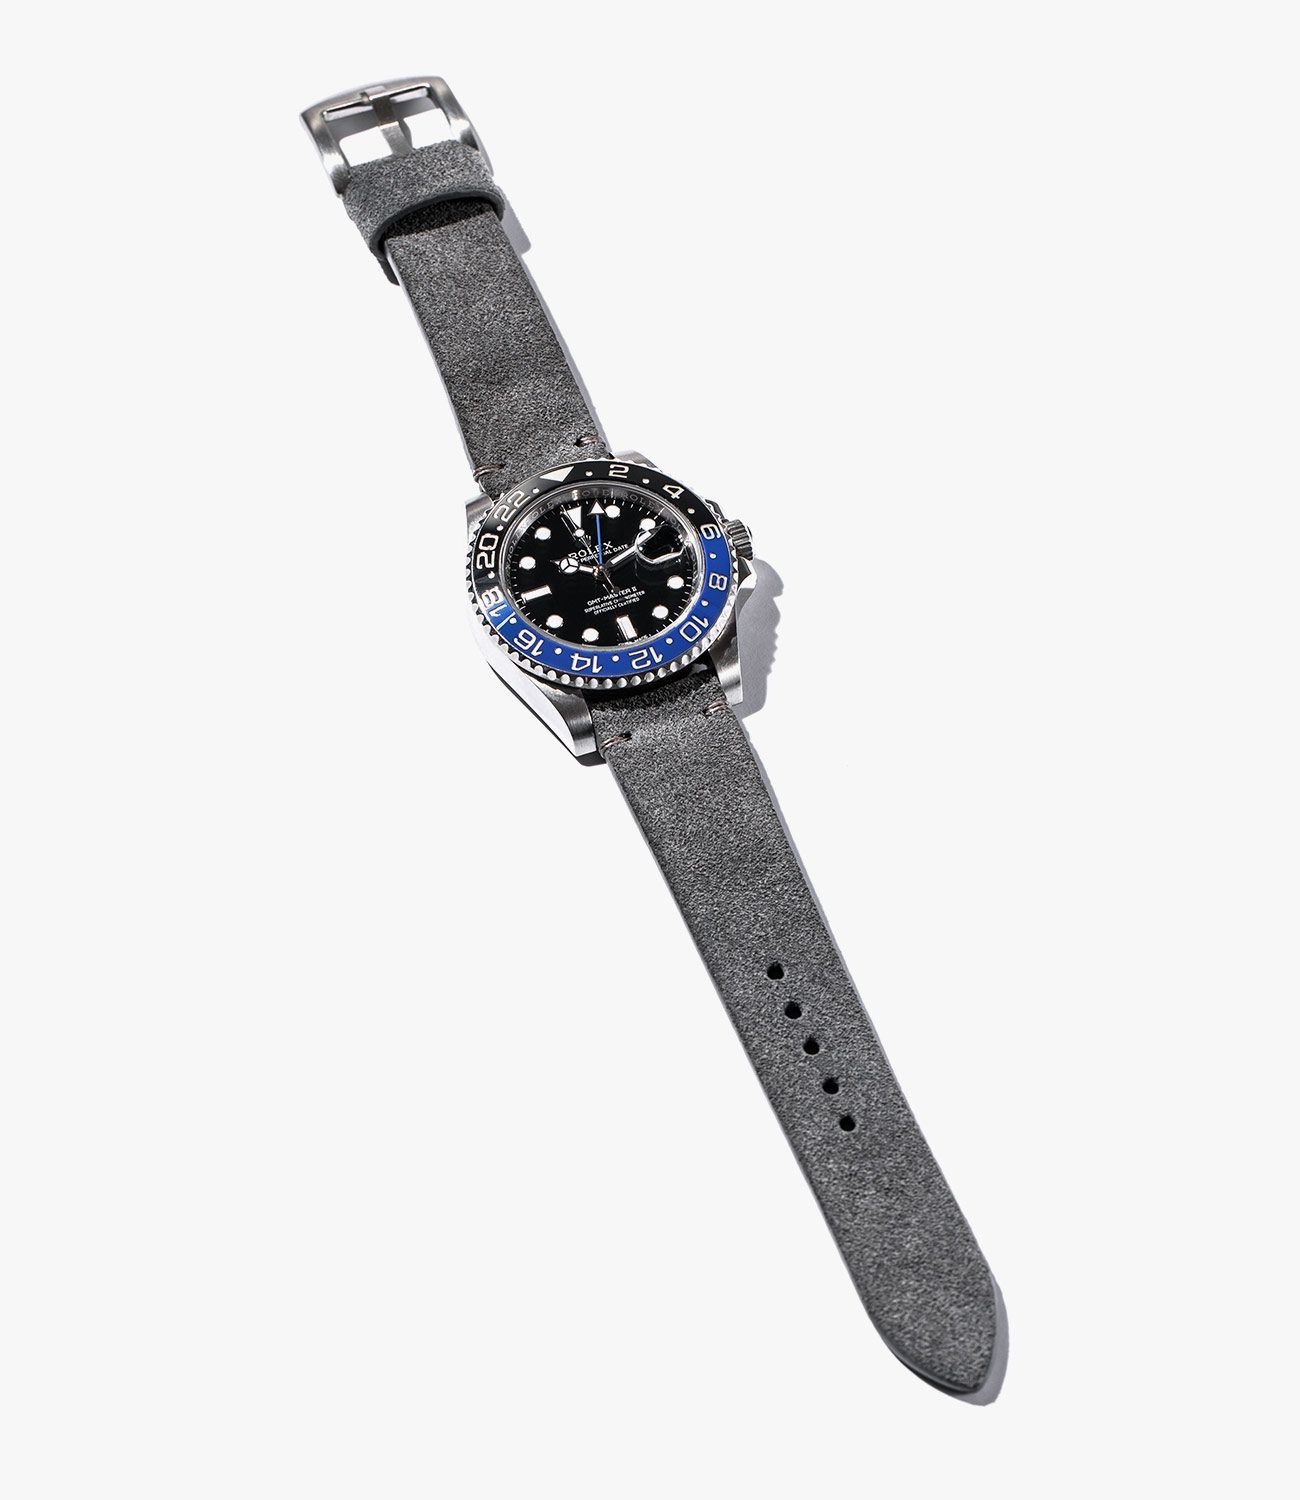 Leather-Watch-Bands-gear-patrol-Bas-and-Loks-Grey-slide-1